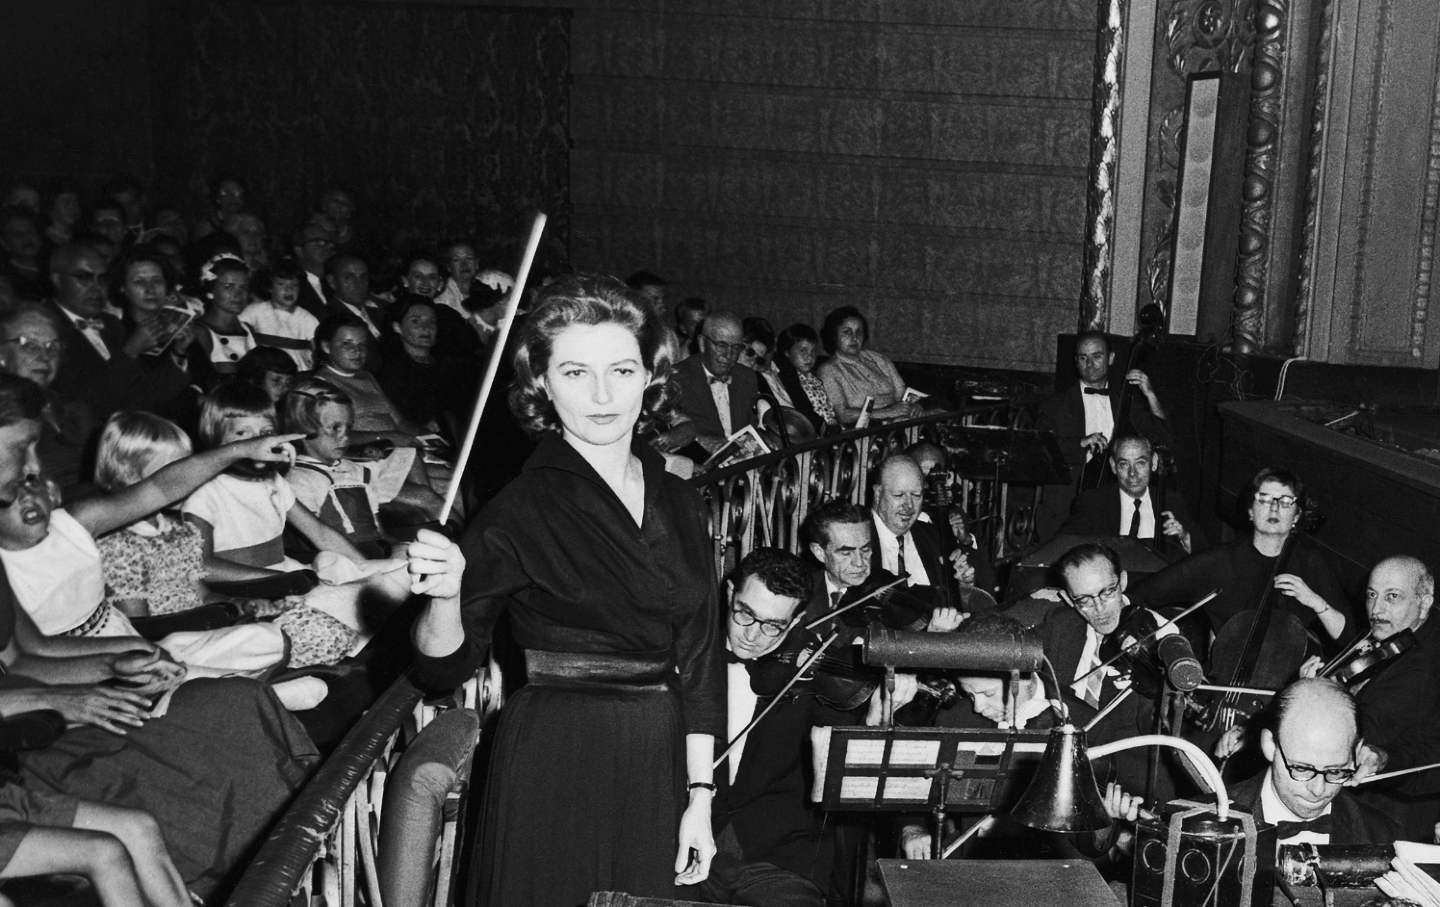 A conductor raises her baton in an orchestra pit, surrounded by musicians